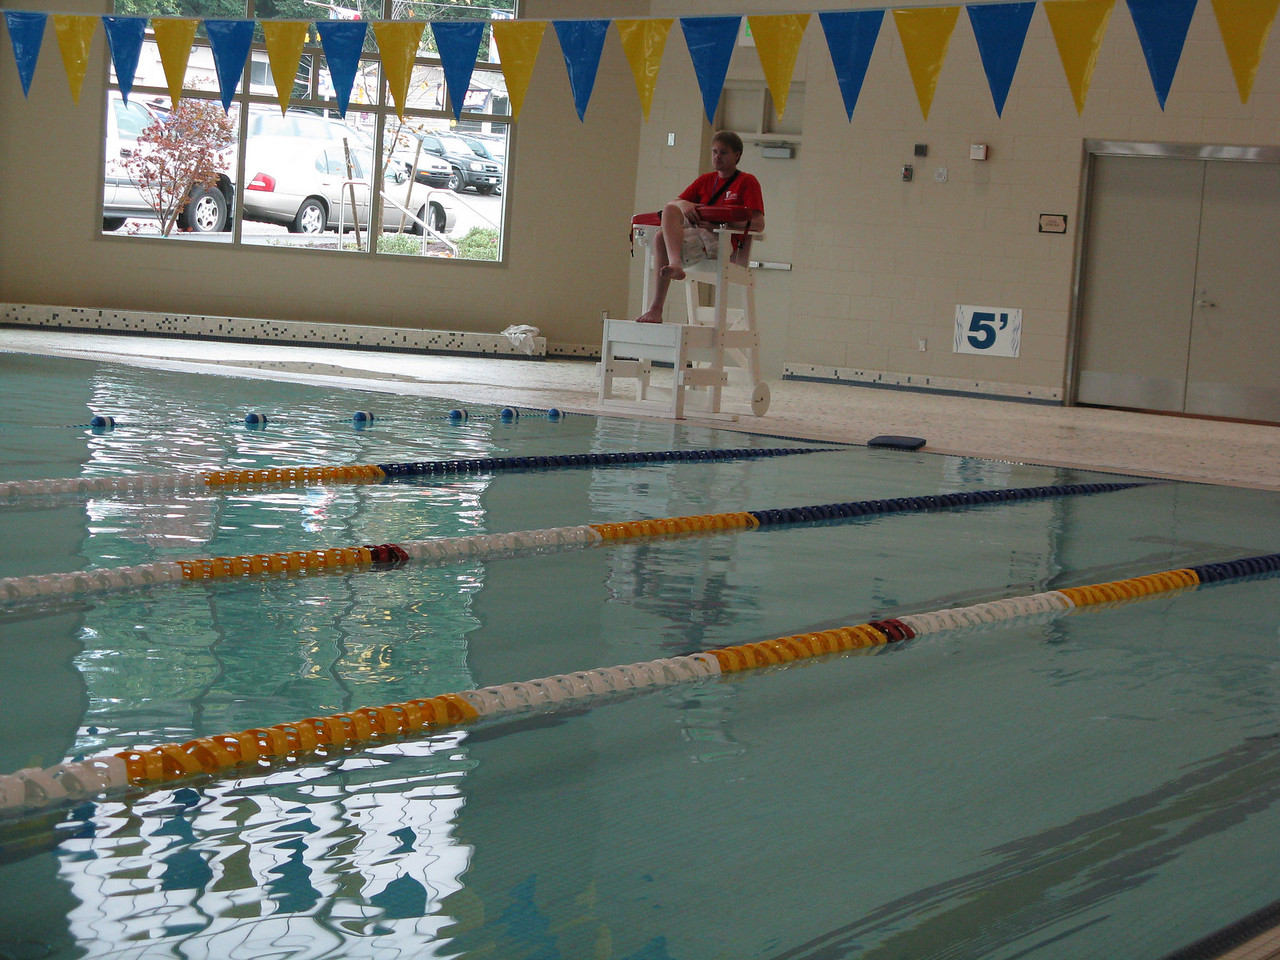 This is a brand new pool.  The YMCA opened on Oct 3, 2008.